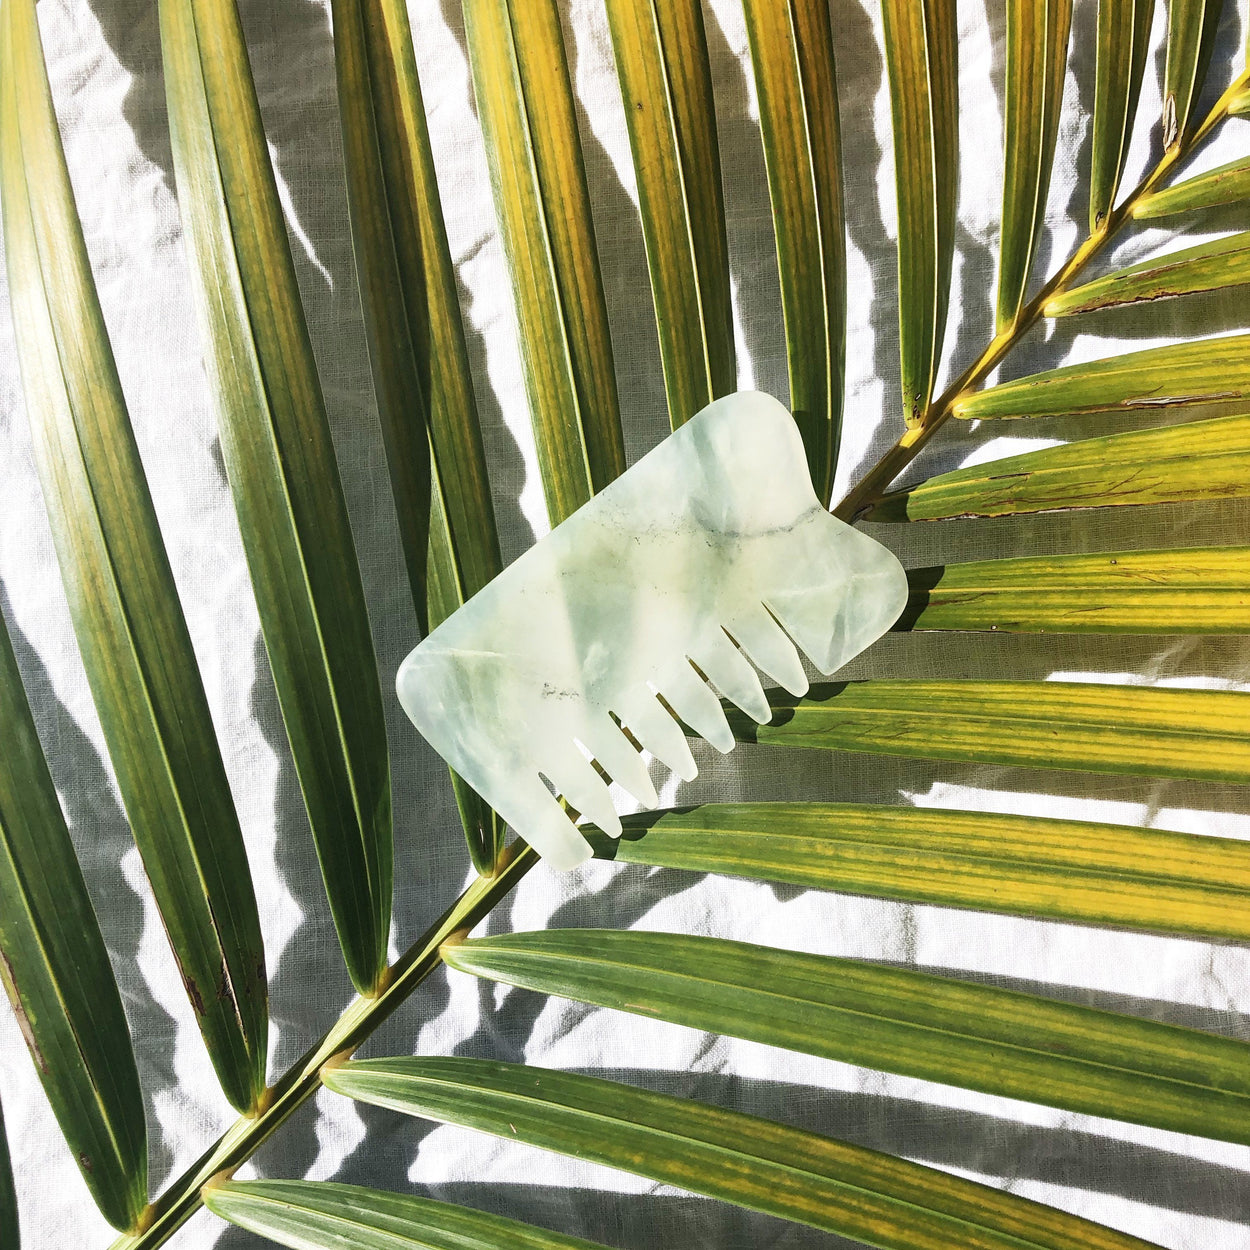 JADE GUA SHA BOARD AND COMB - THESEEKE